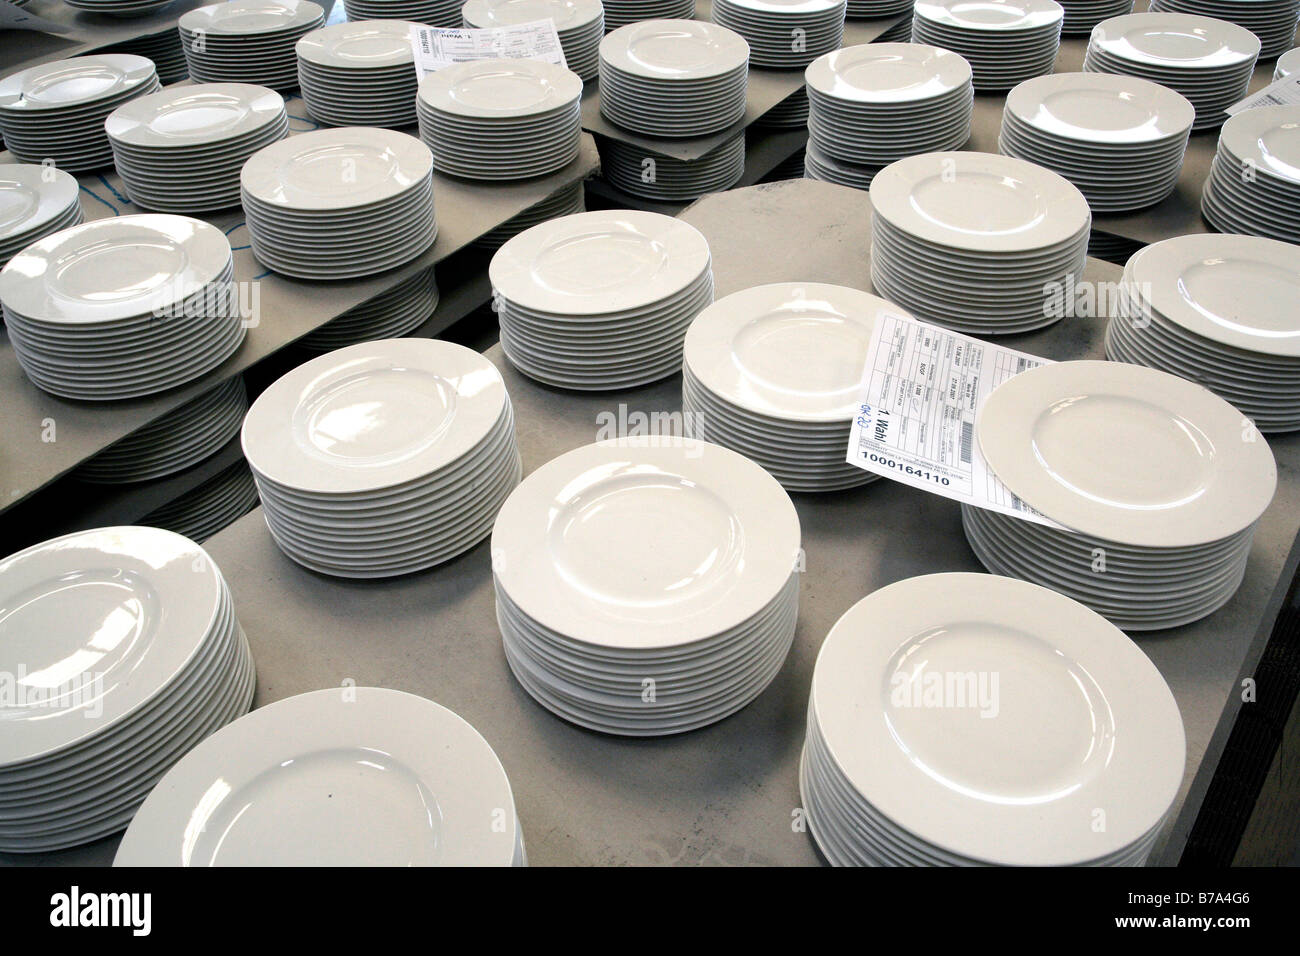 plates in the warehouse of the crockery production villeroy boch stock photo royalty free. Black Bedroom Furniture Sets. Home Design Ideas